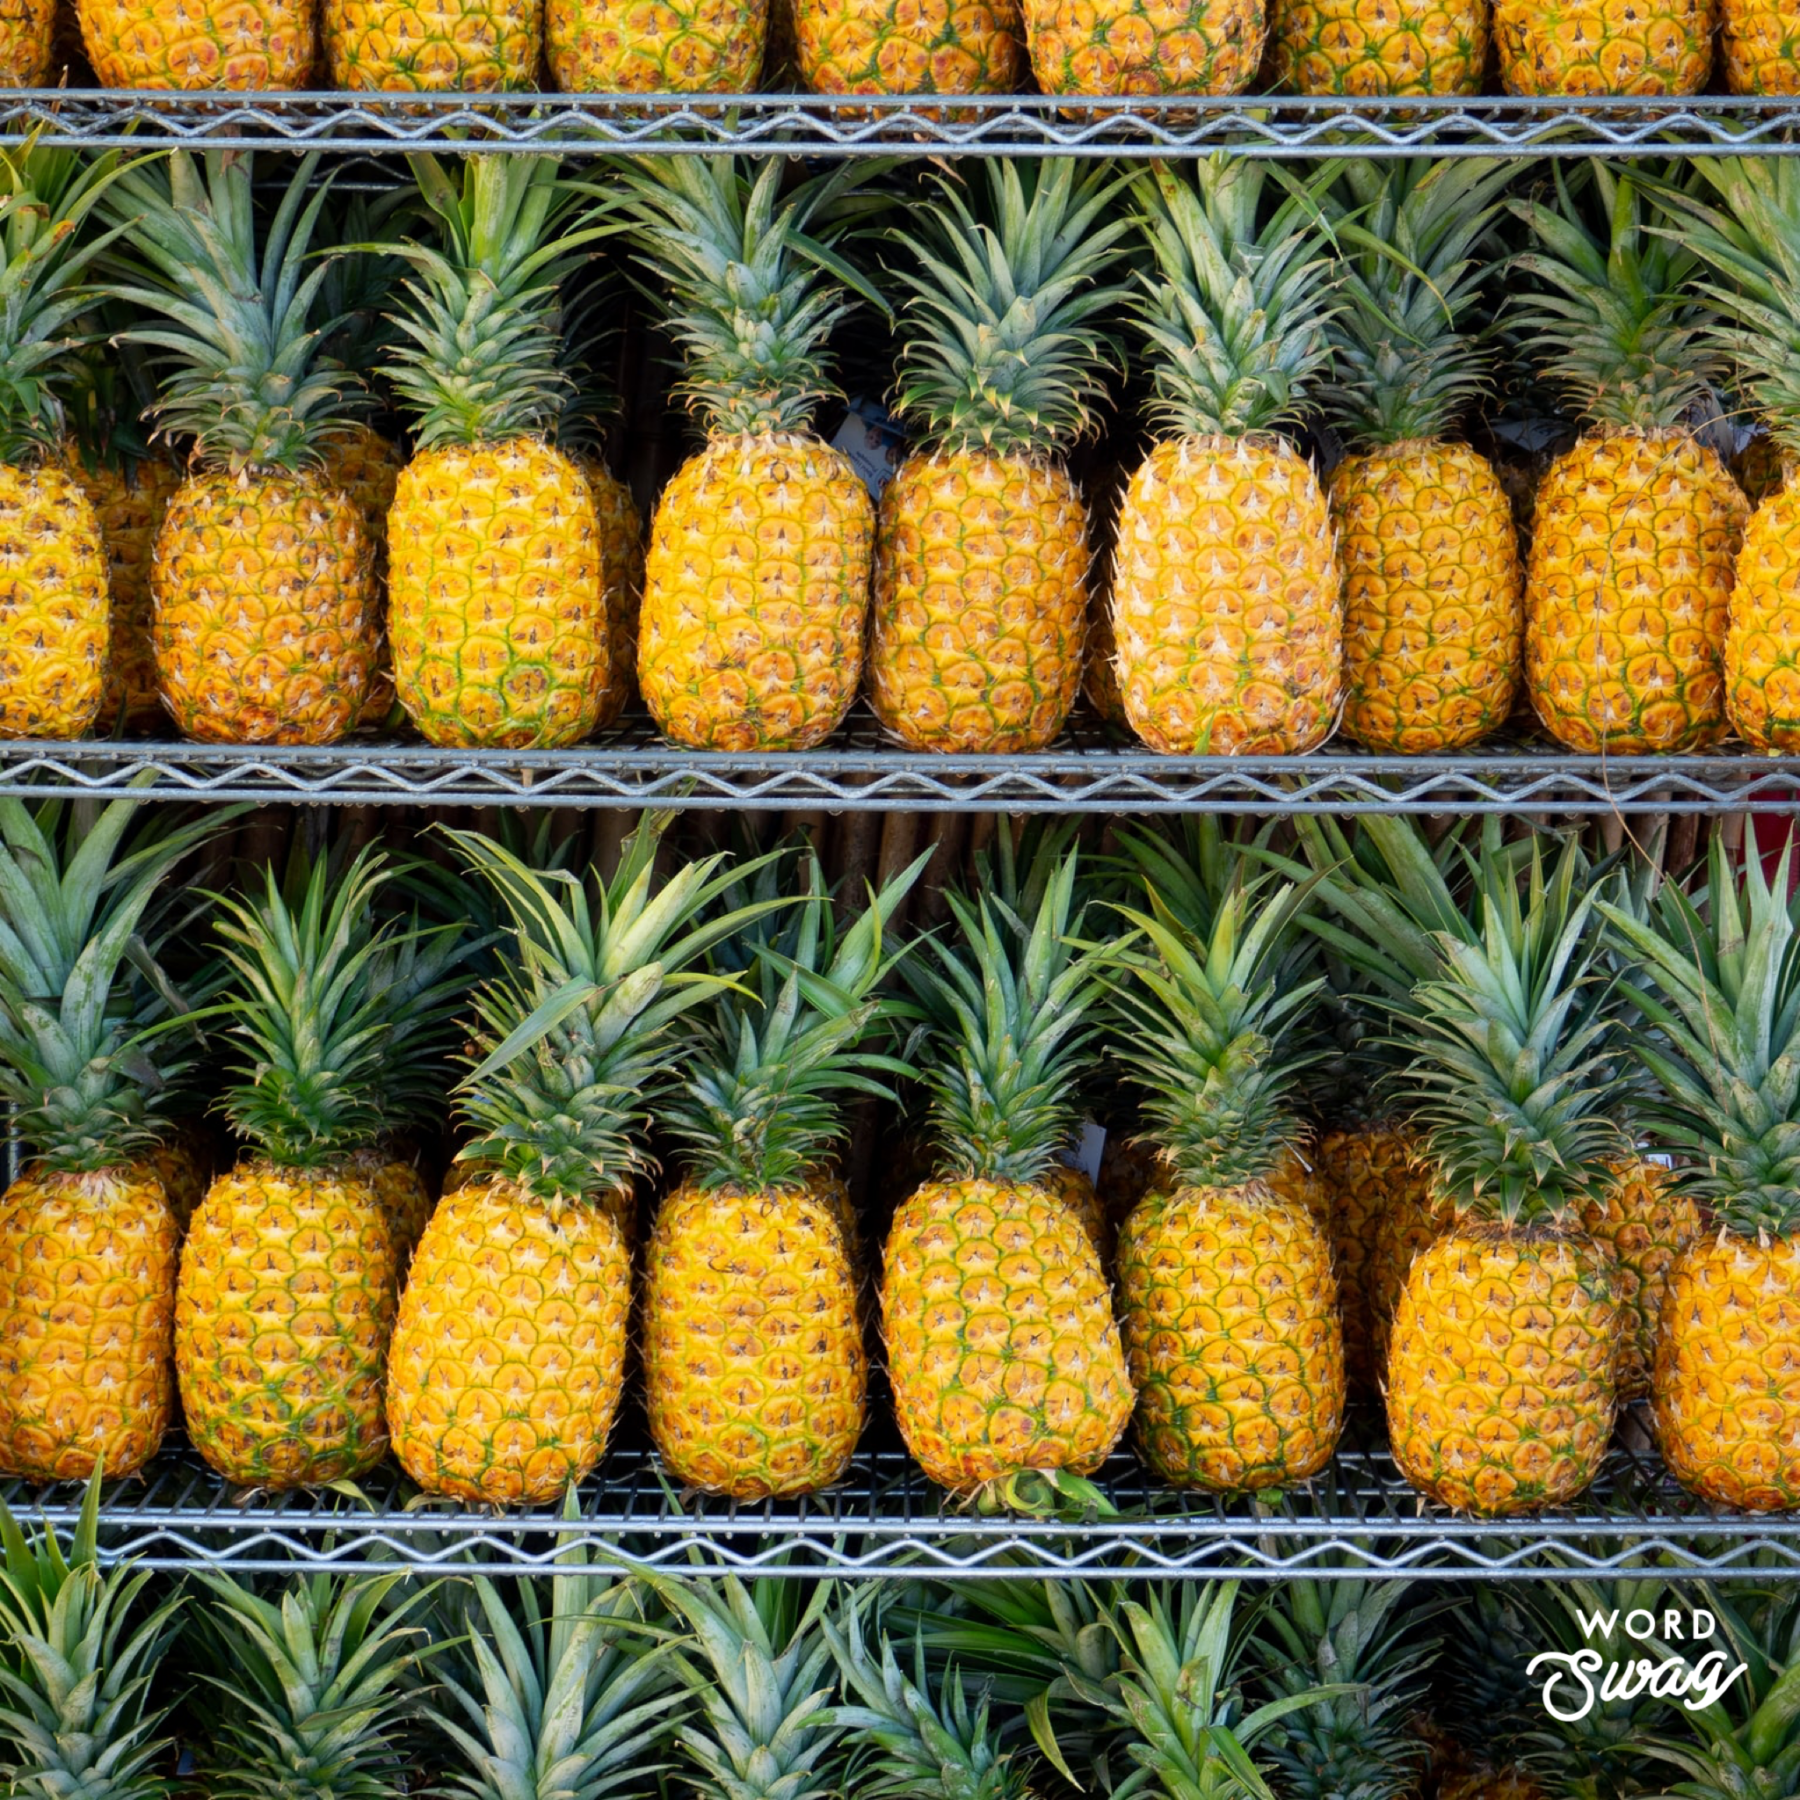 Dole Pineapple Plantation - Dole Whip in Hawaii